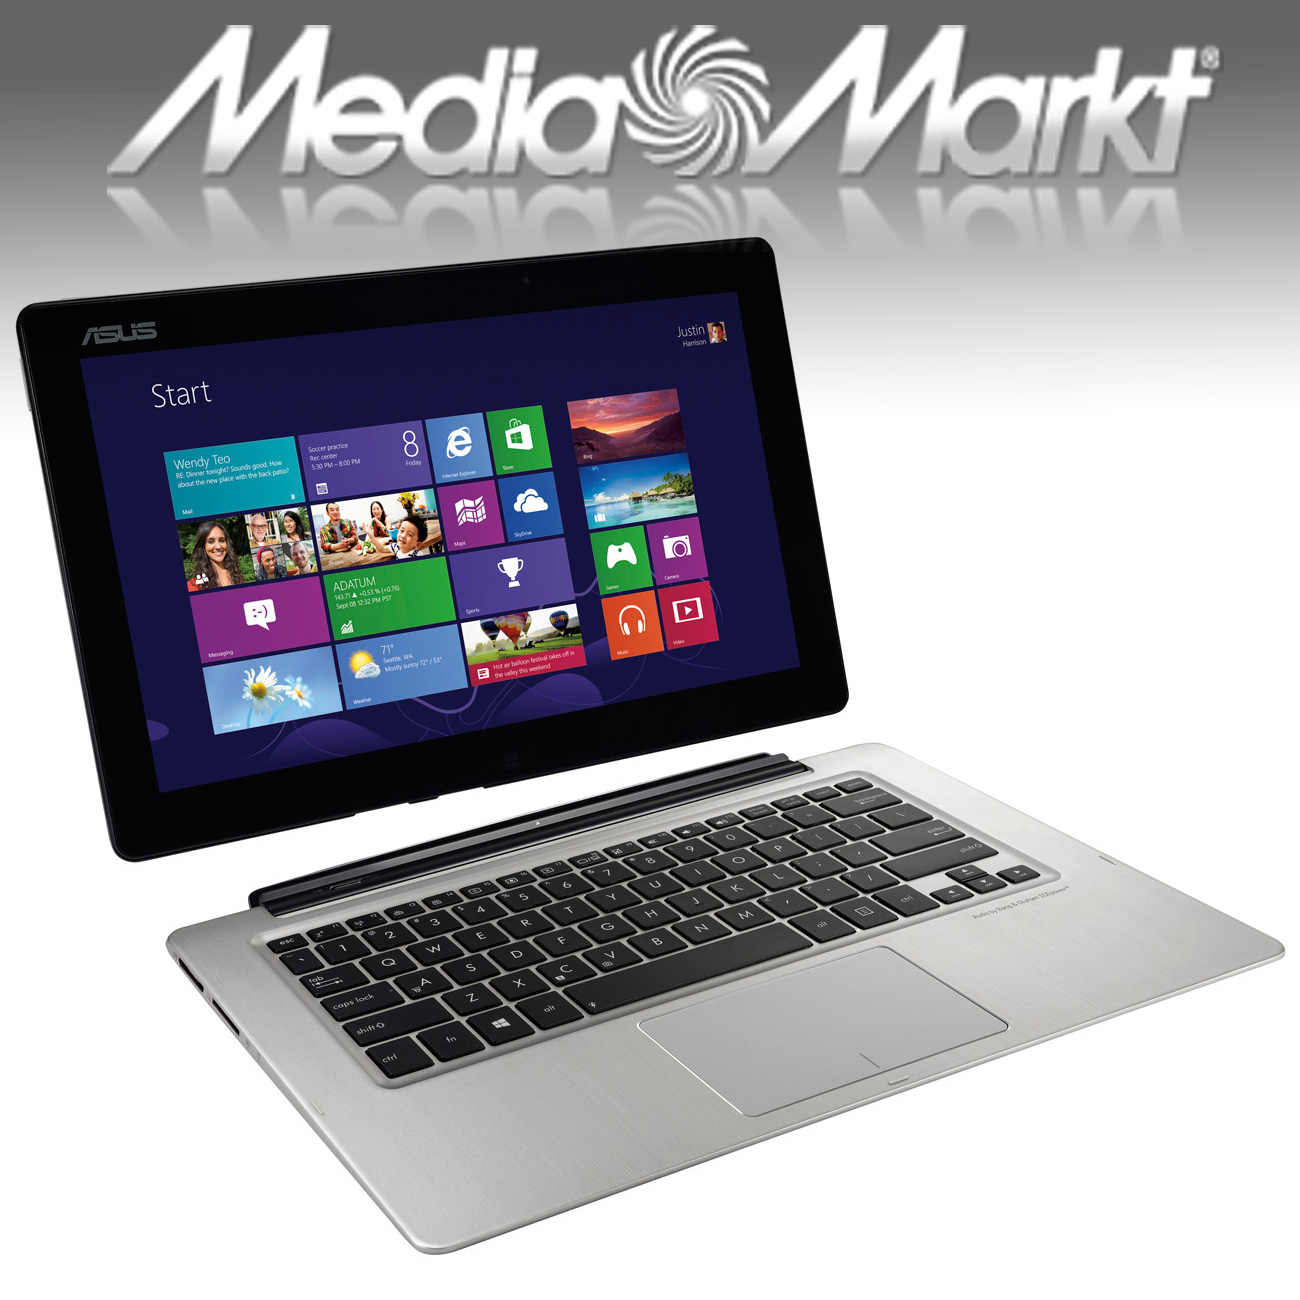 comment je n 39 ai pas achet mon asus transformer book chez media markt. Black Bedroom Furniture Sets. Home Design Ideas